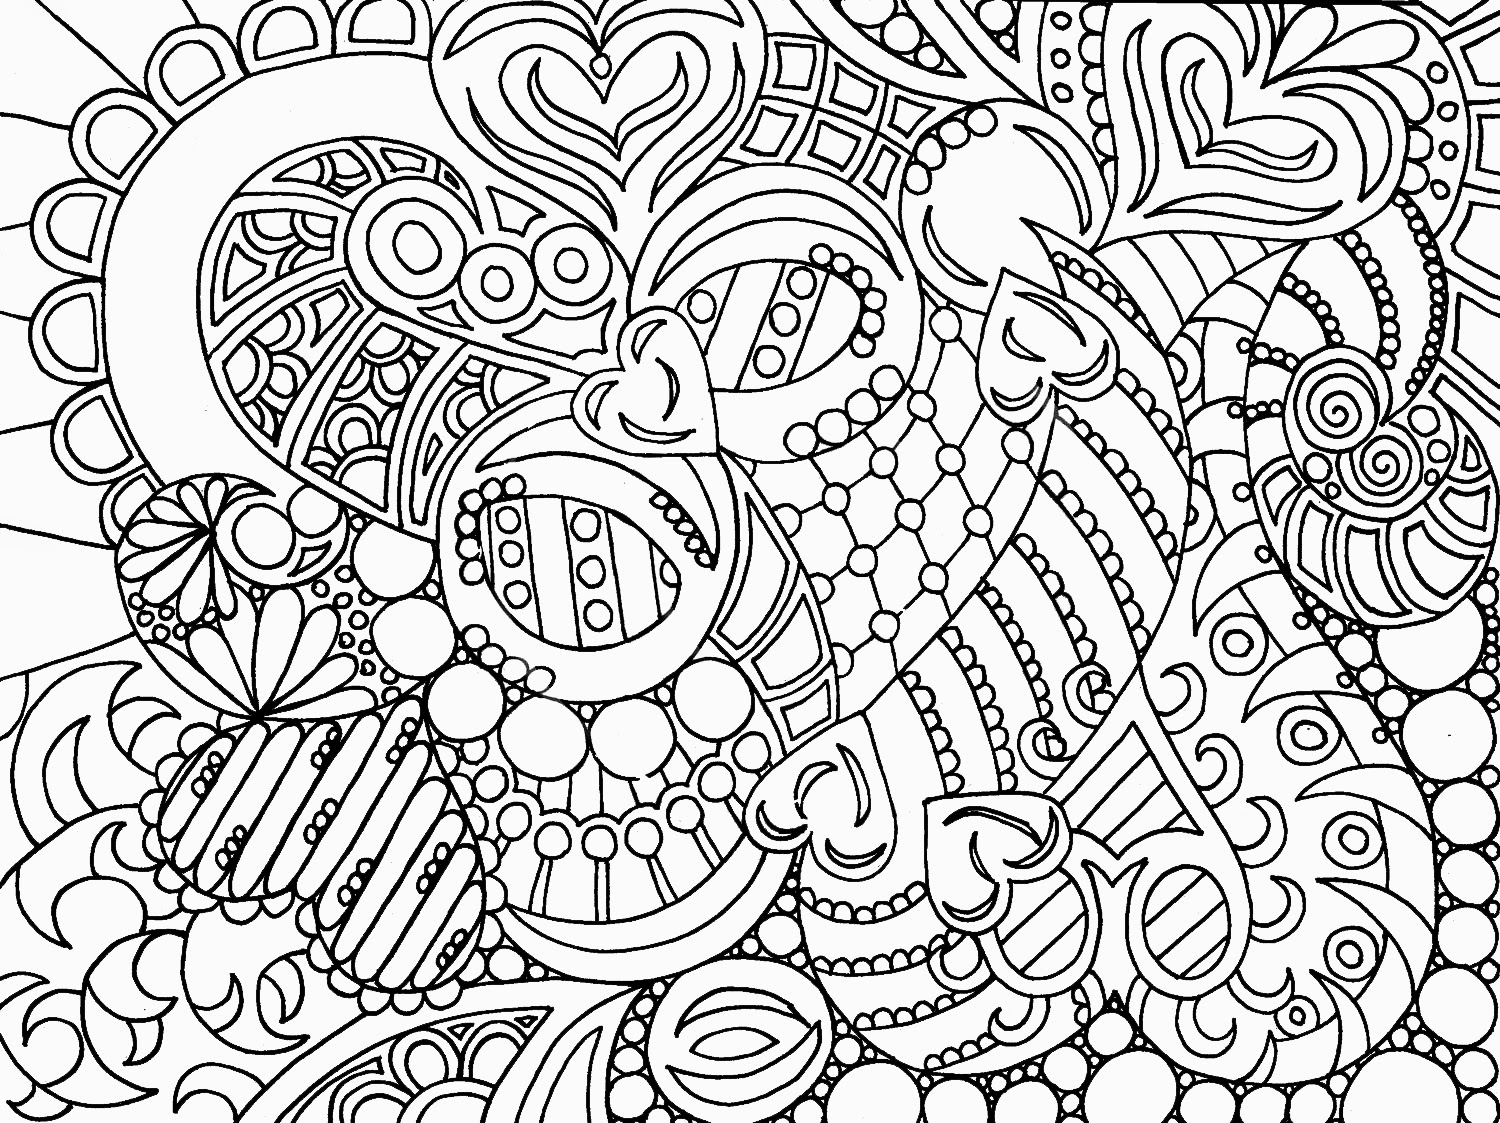 HD Coloring Pages For Adults Abstract Free